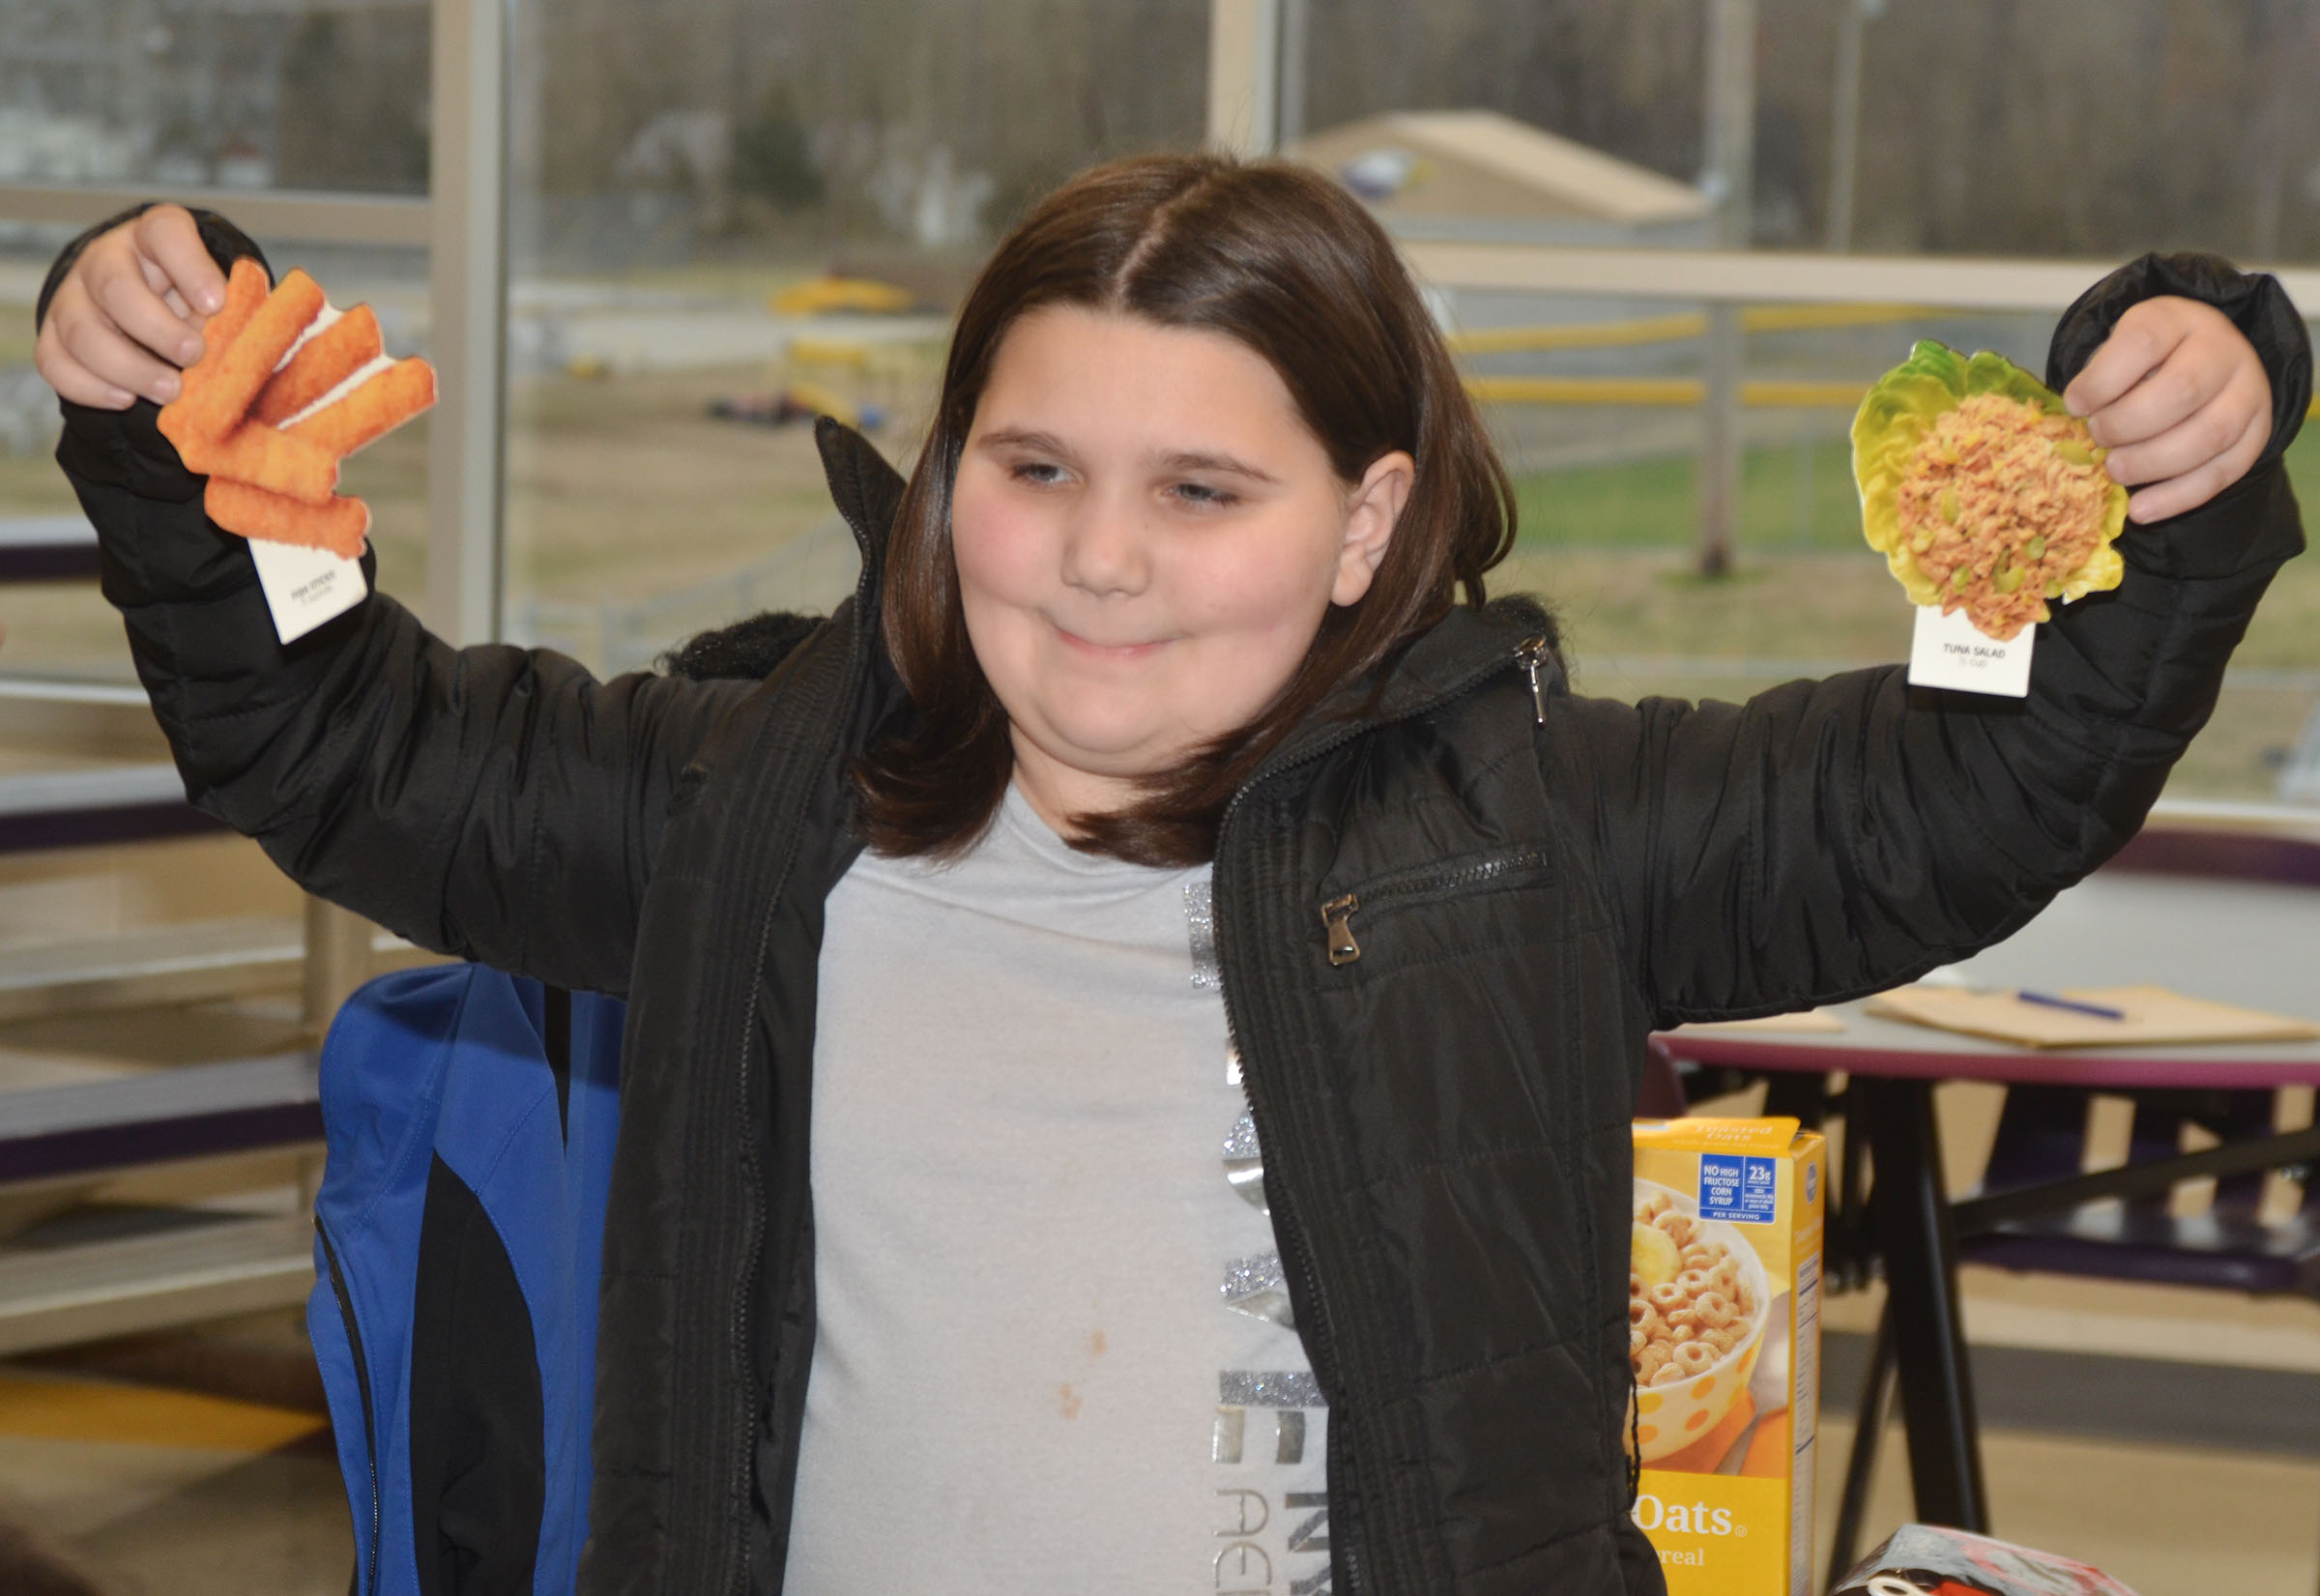 CES third-grader Kailei Hernandez asks her classmates which is healthier, cheese sticks or tuna fish.